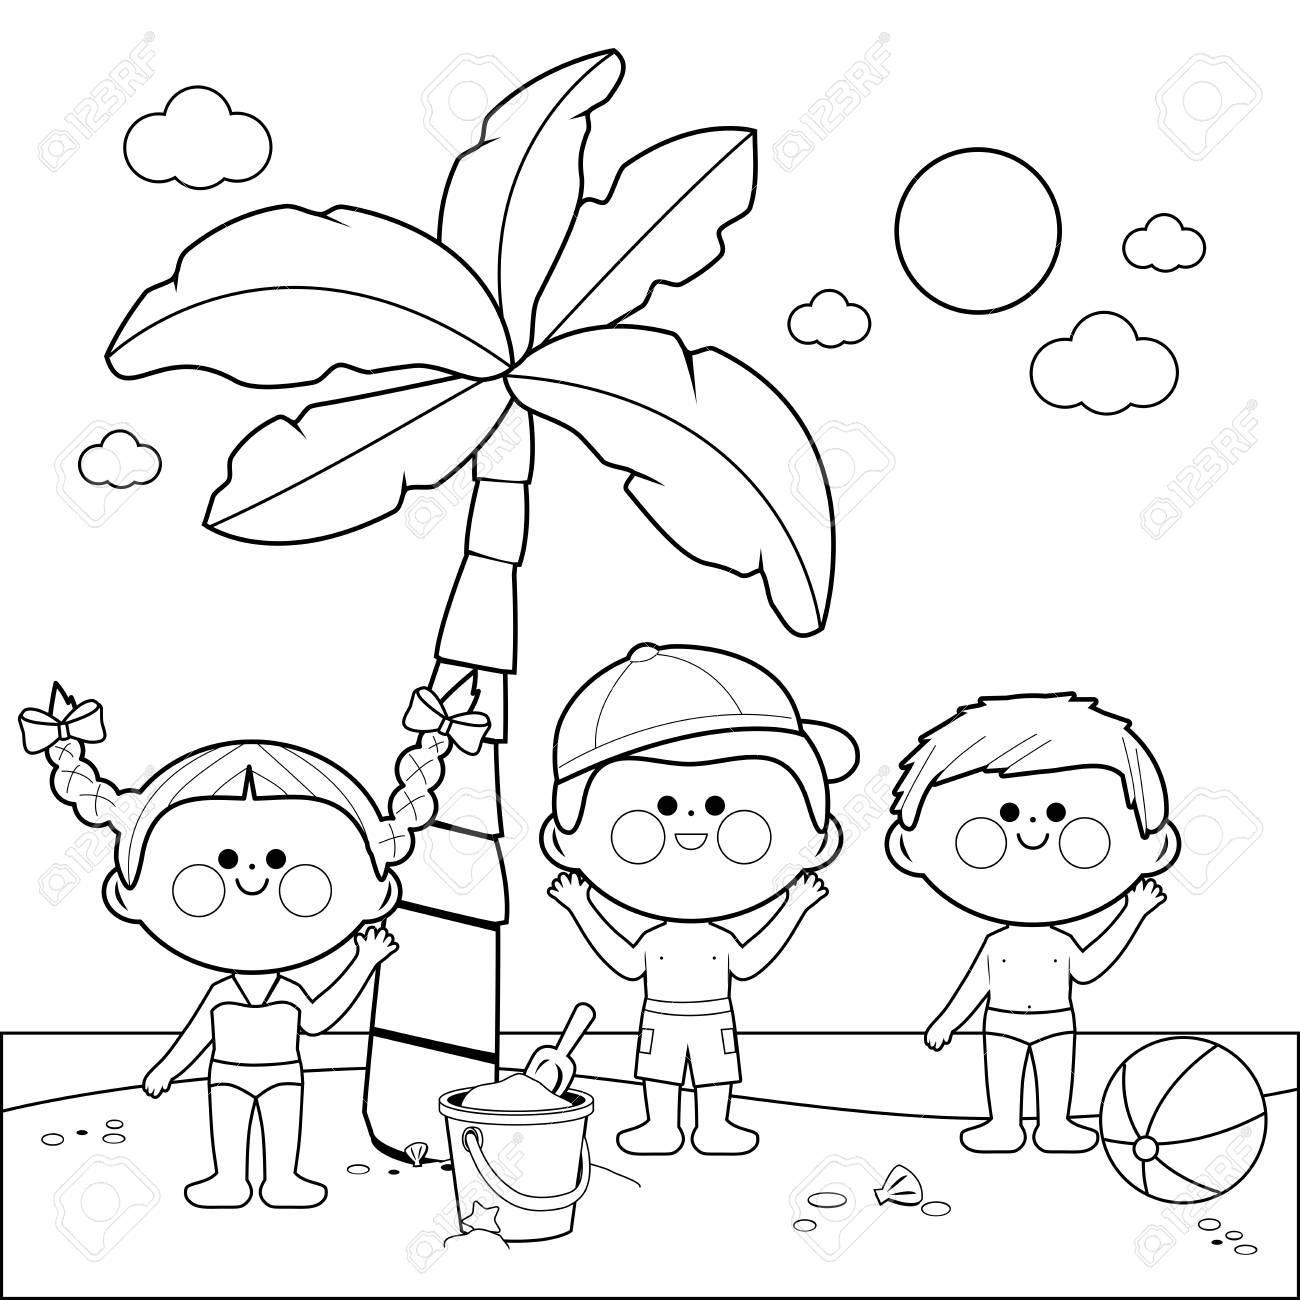 Children at the beach playing under a palm tree. Black and white..